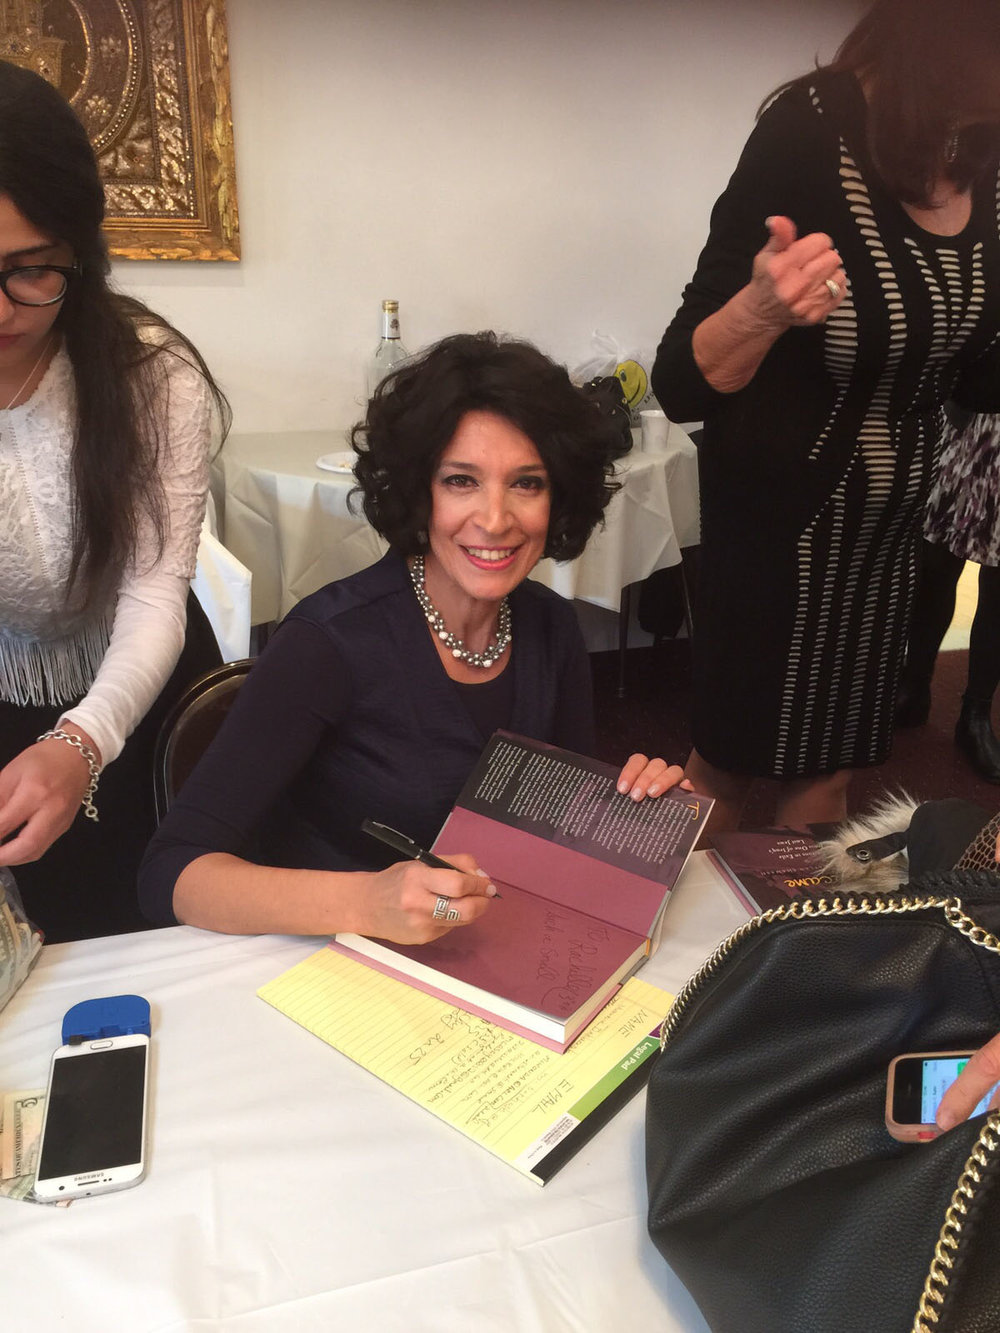 Cynthia signing her book after speaking at Congregation Bene Neharayim in Jamaica Estates, Queens.